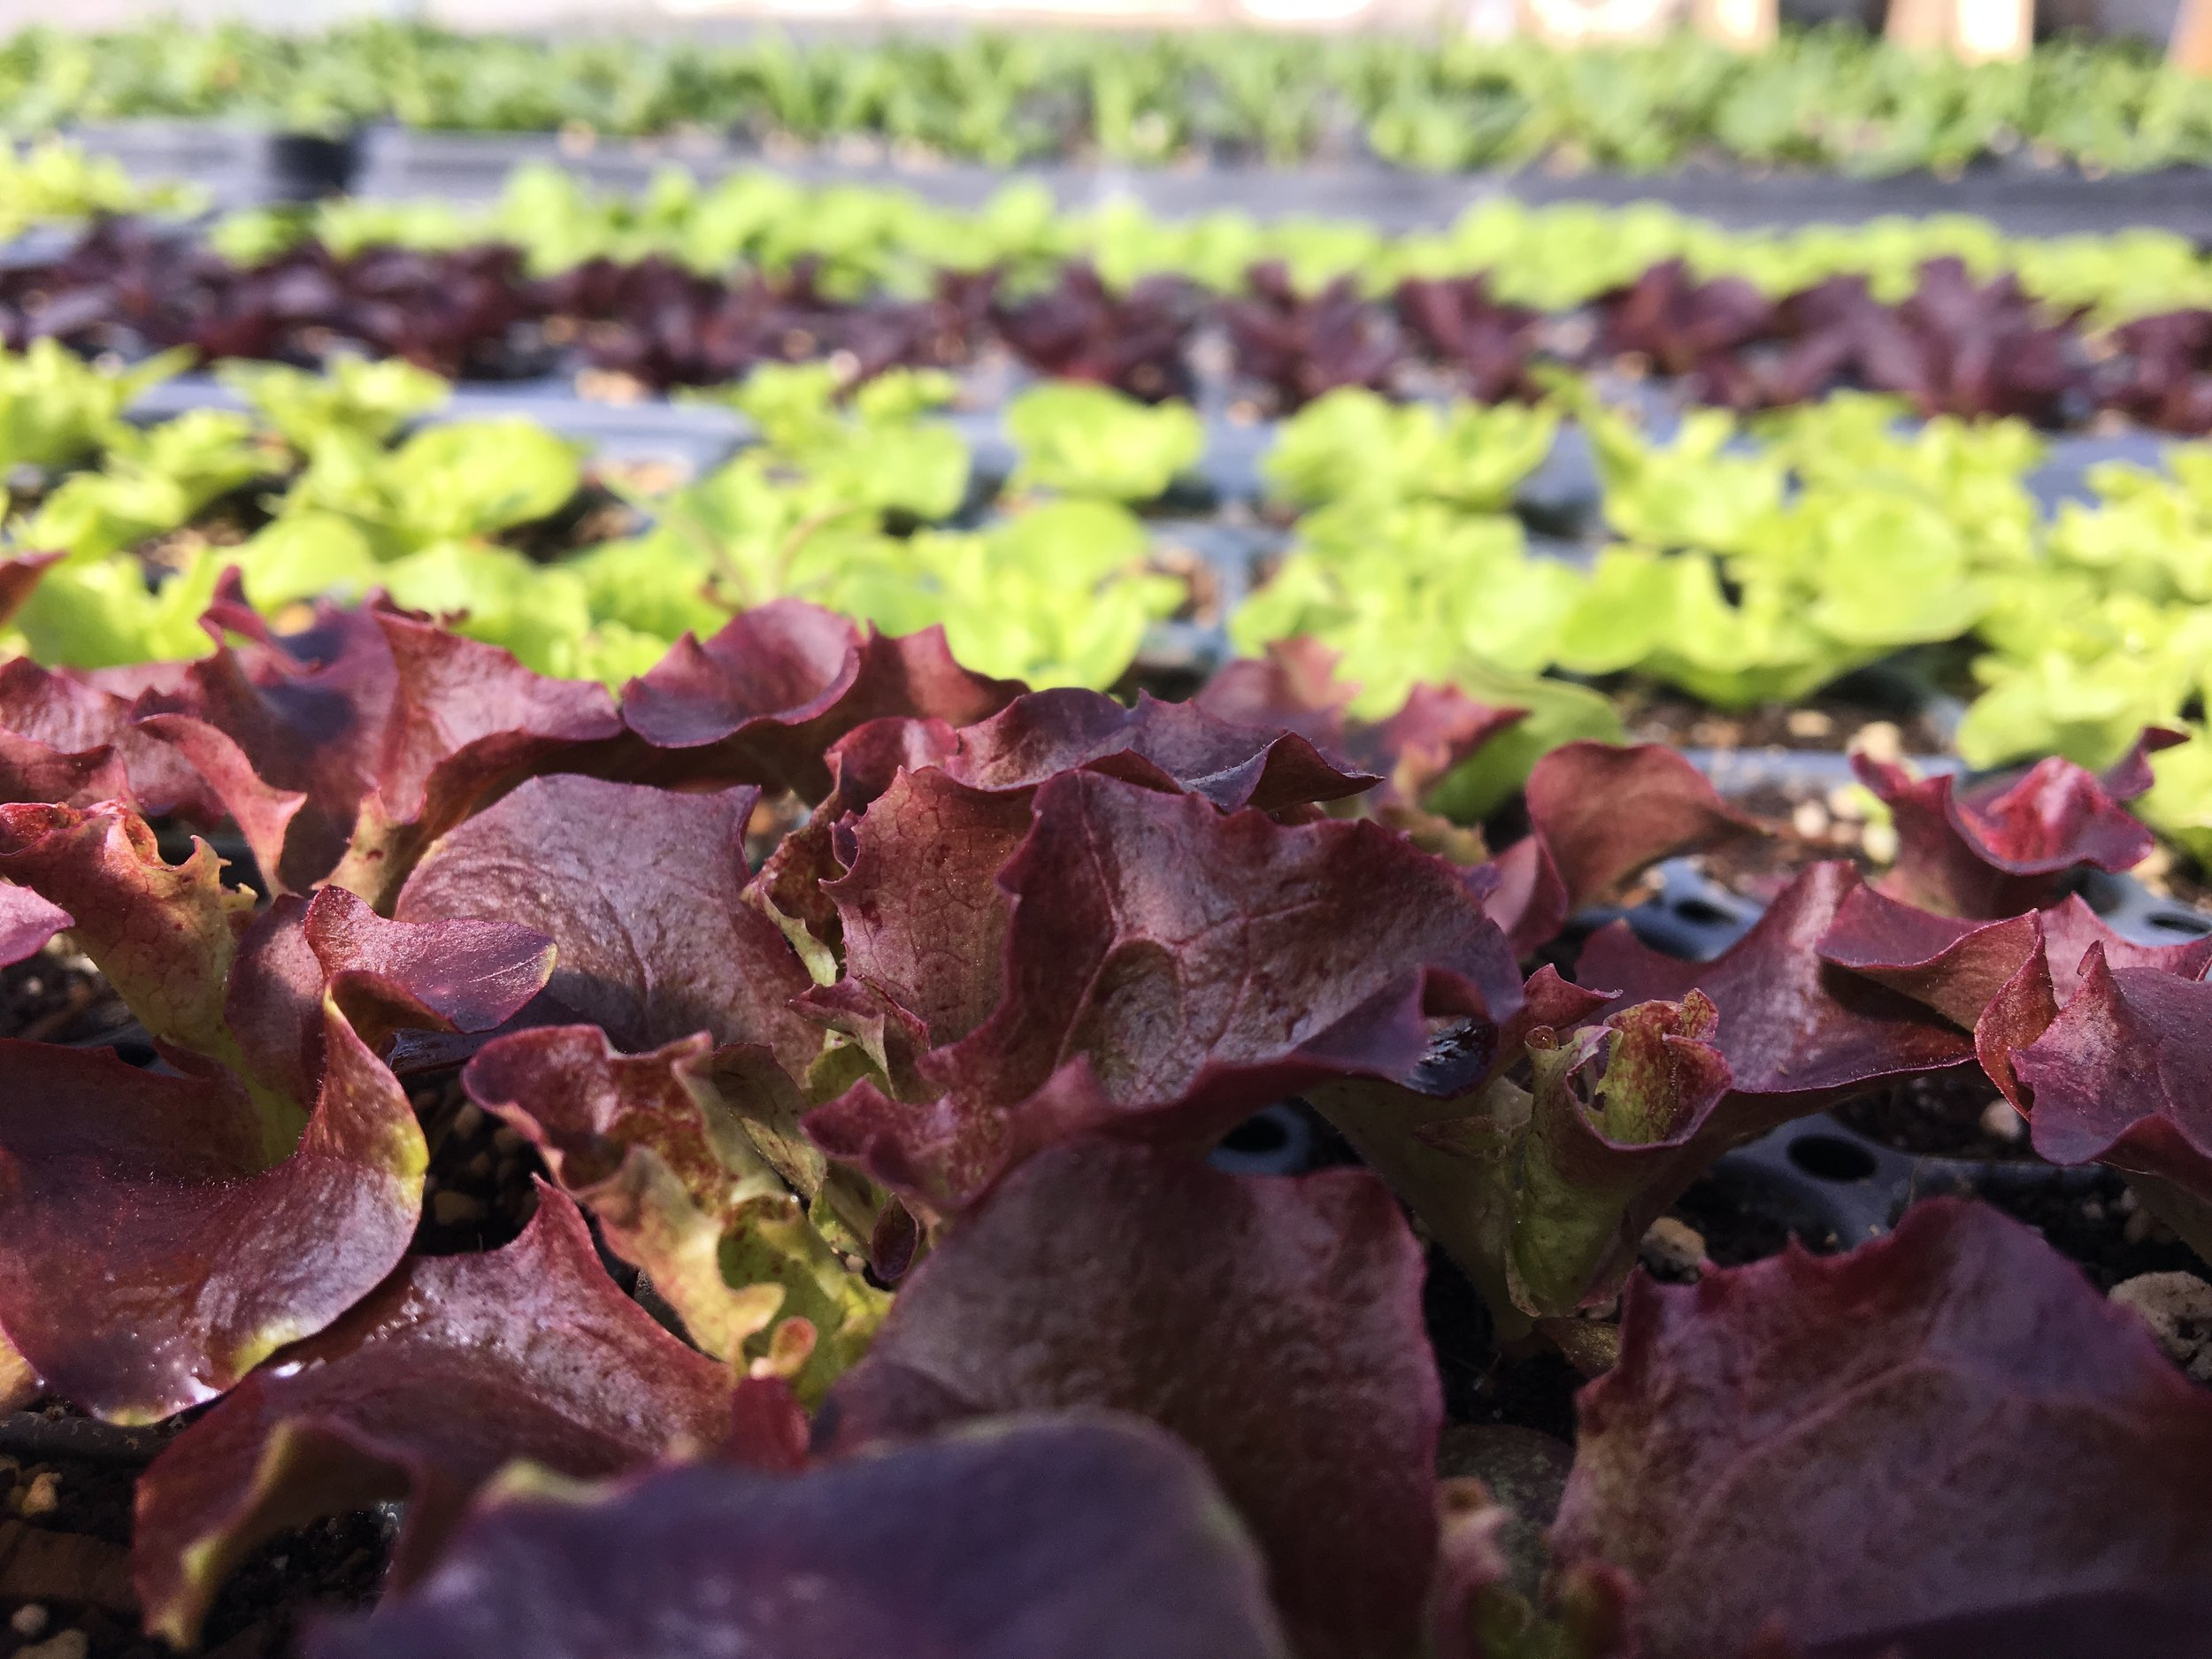 Loving the bold colors of the early head lettuce seedlings.